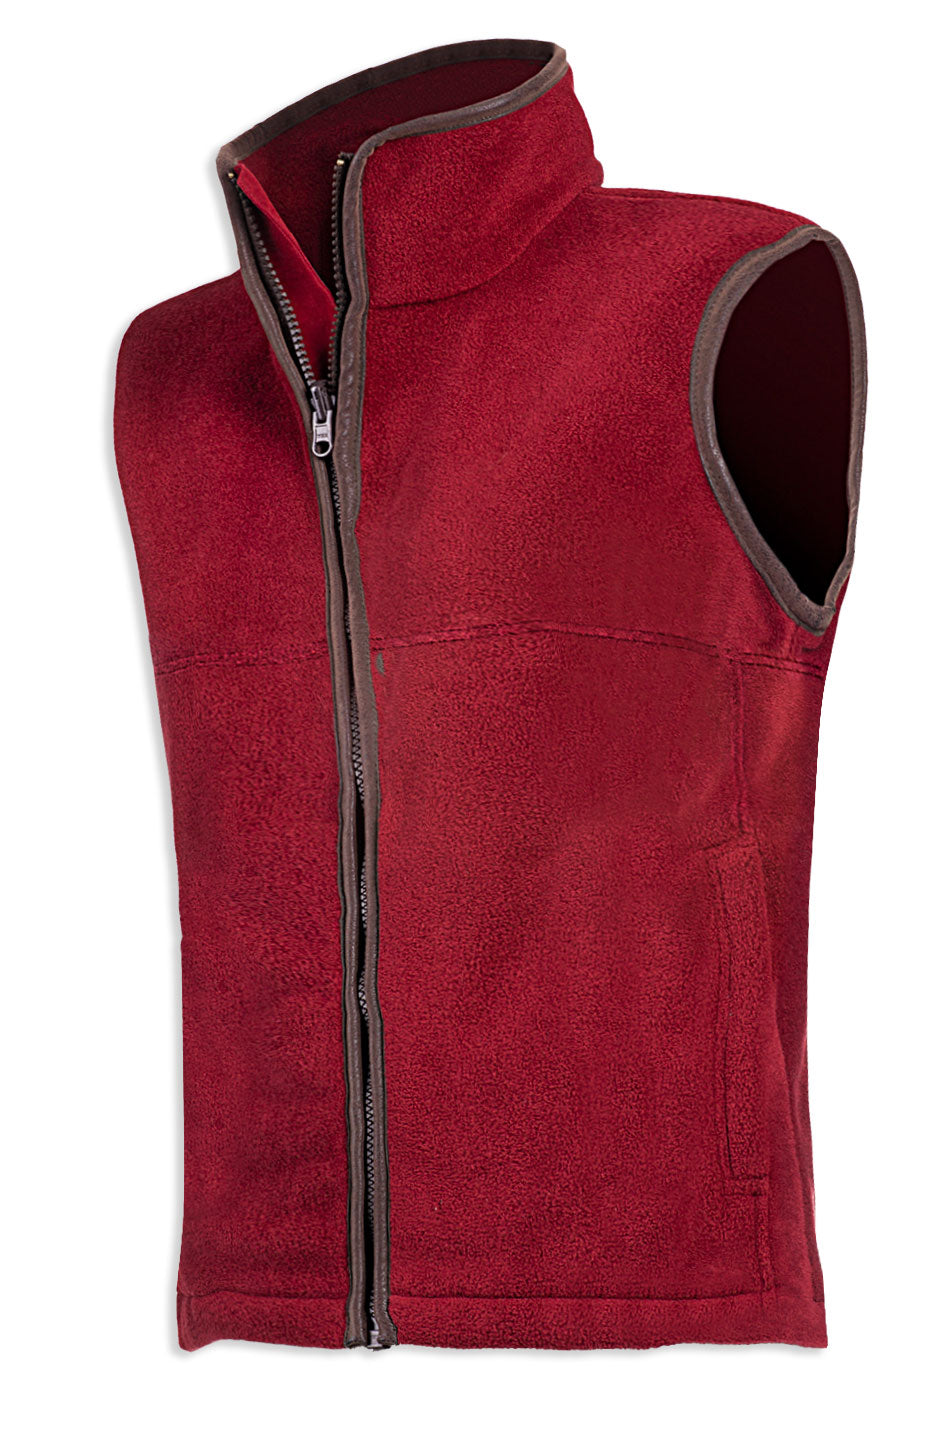 burgundy Baleno Wizz Kids Fleece Gilet